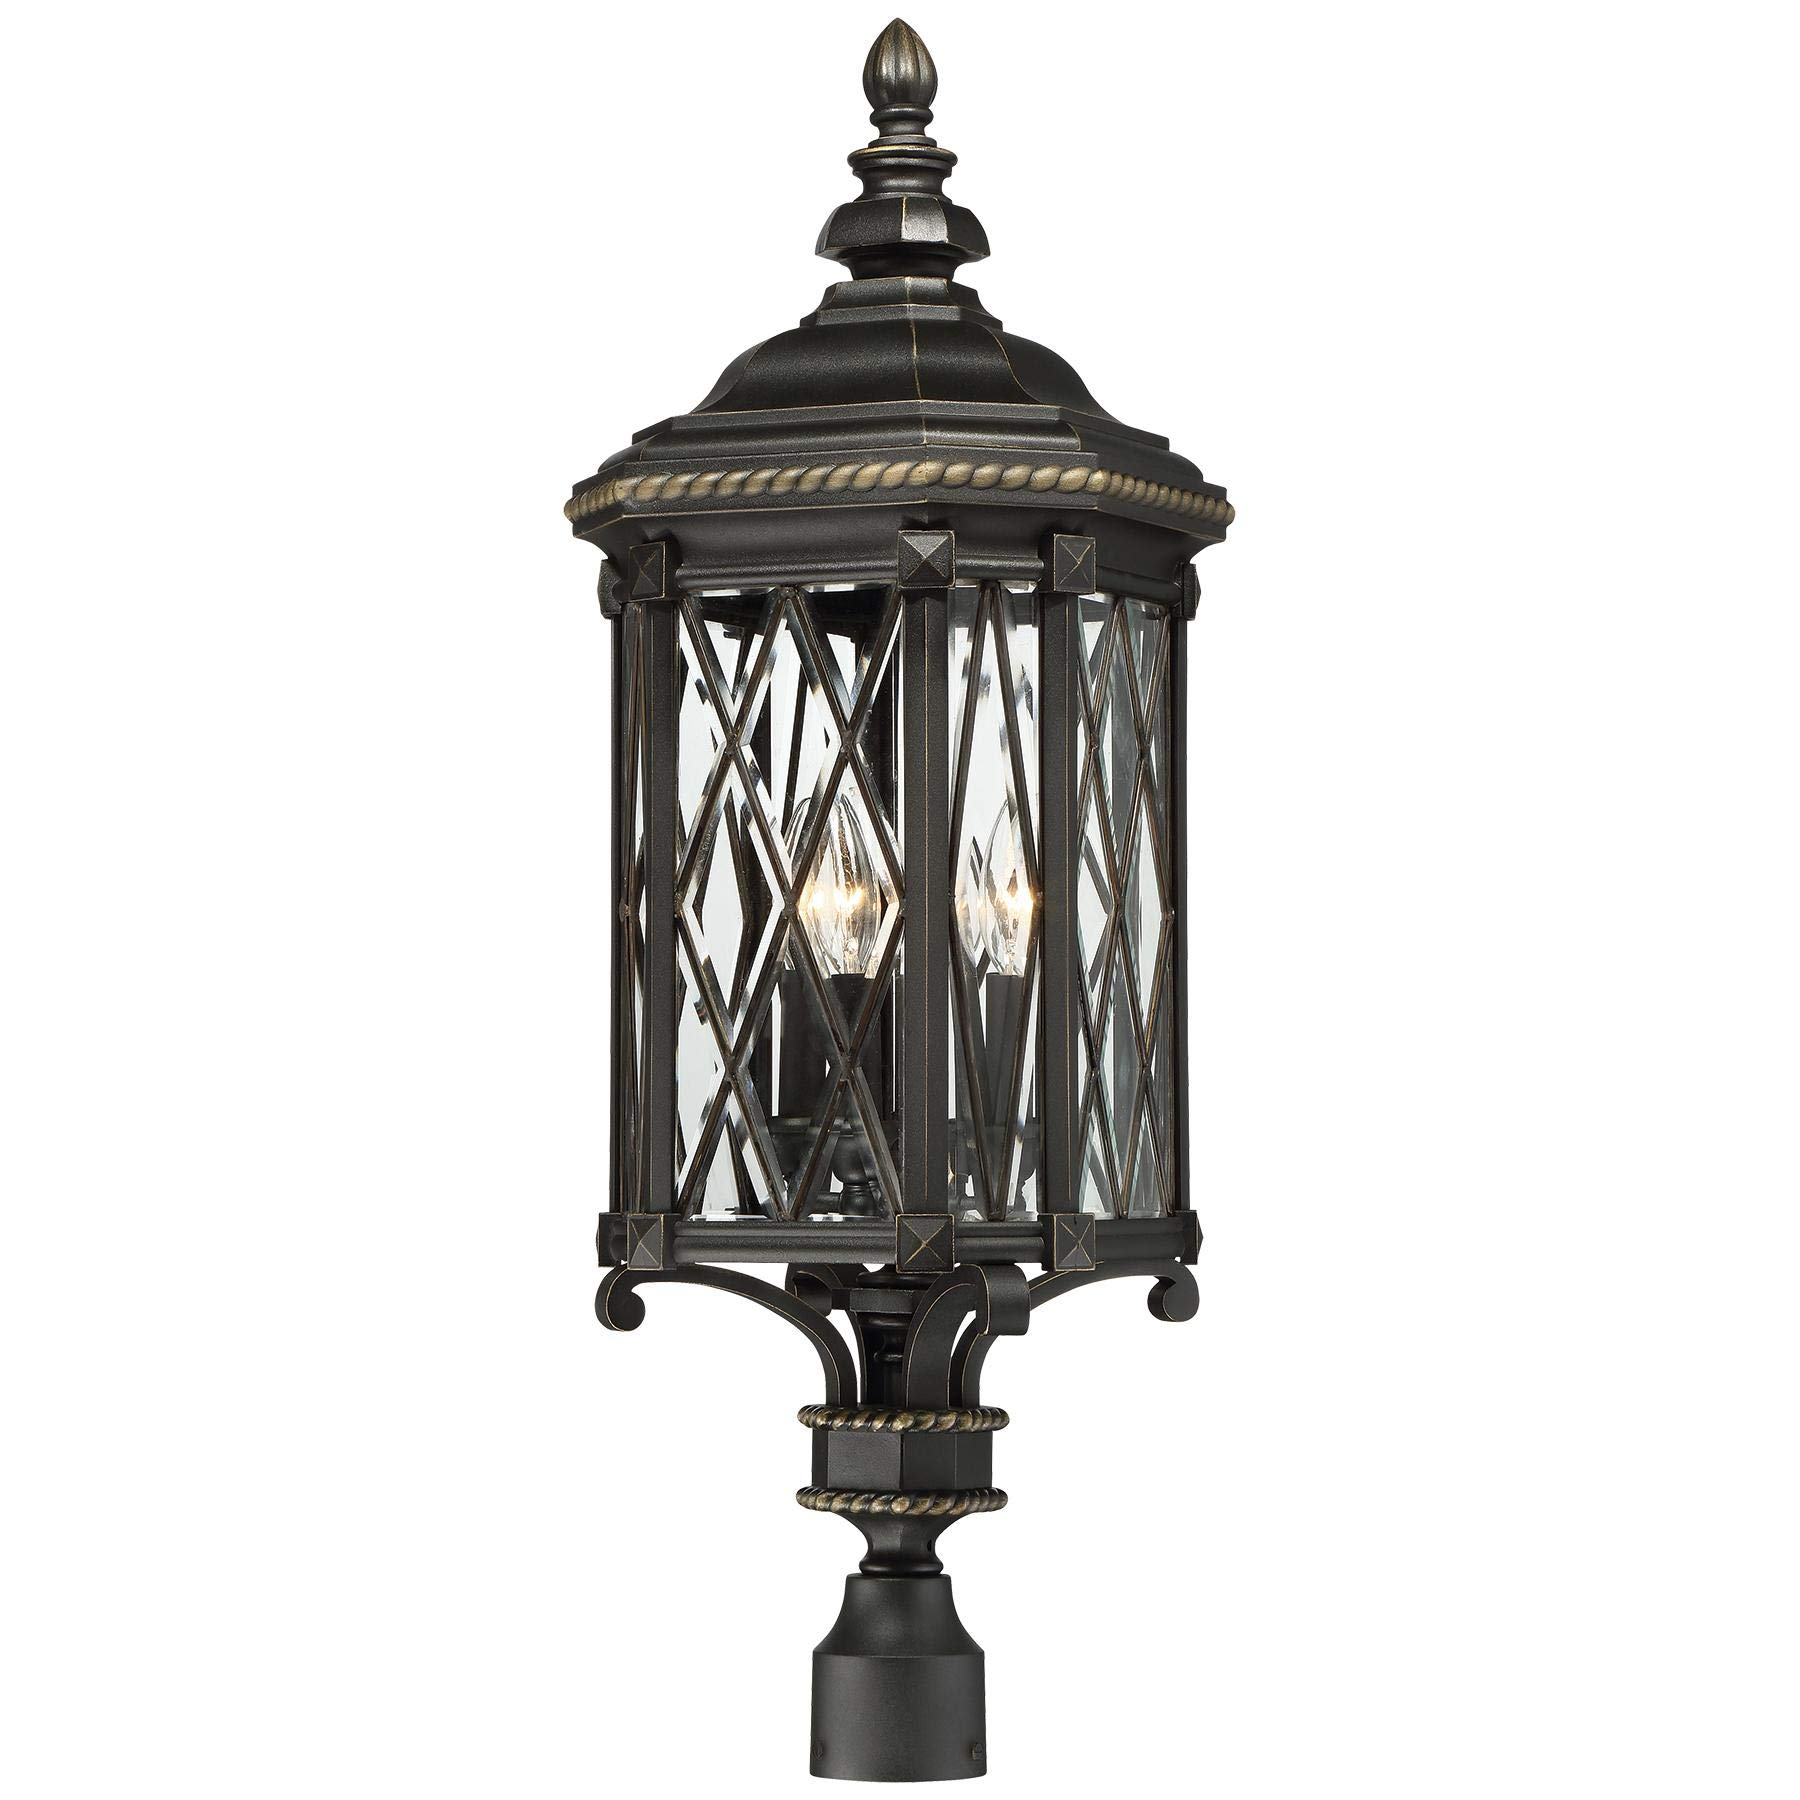 Minka Lavery Minka, 11.00 inches 9326-585 Transitional Four Bexley Manor Collection in Blackfinish, 11.00 inchesFour Light Post Mount